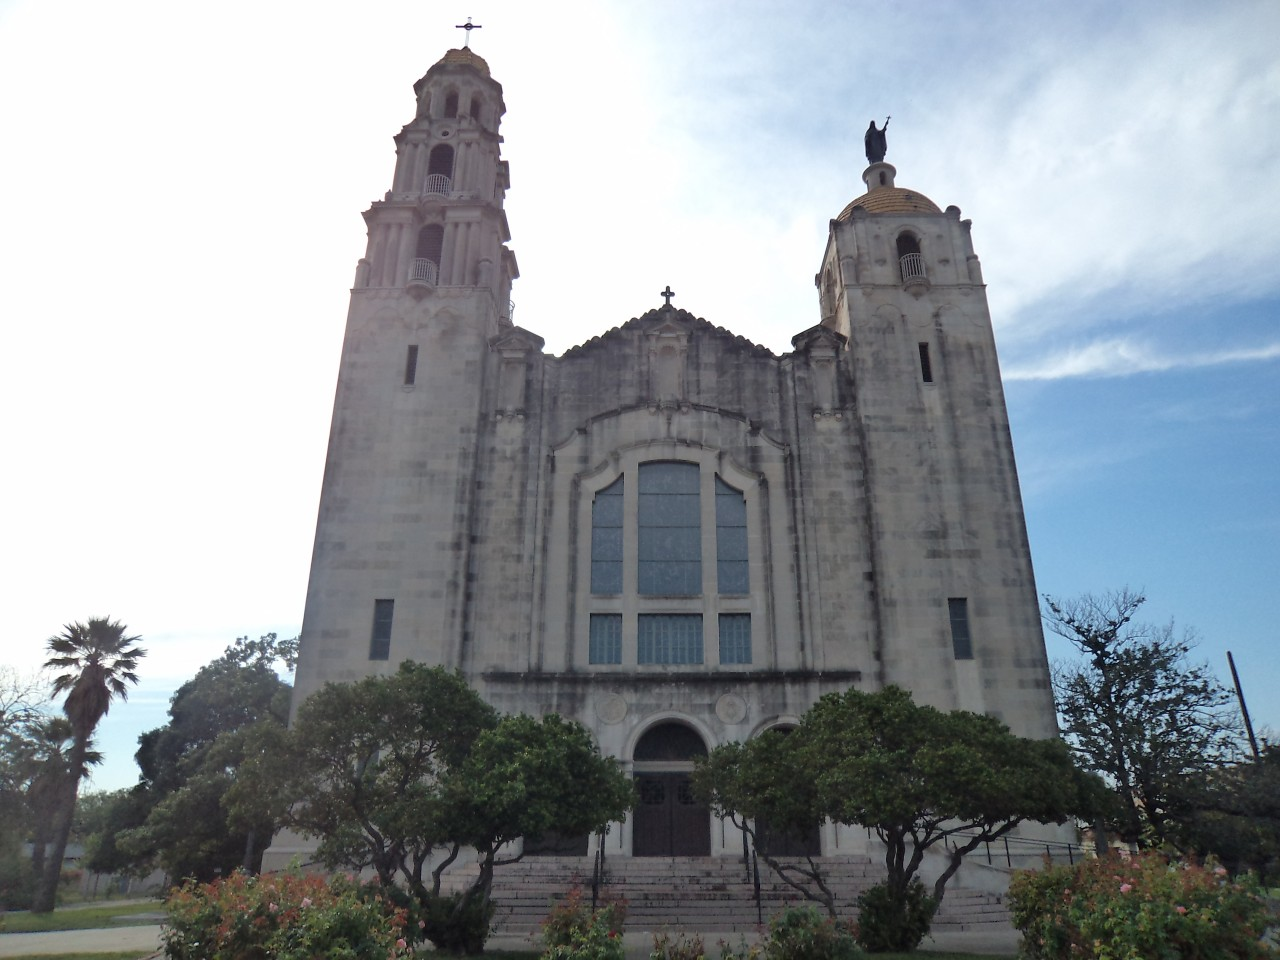 BASILICA OF THE NATIONAL SHRINE OF THE LITTLE FLOWER, San Antonio TEXAS